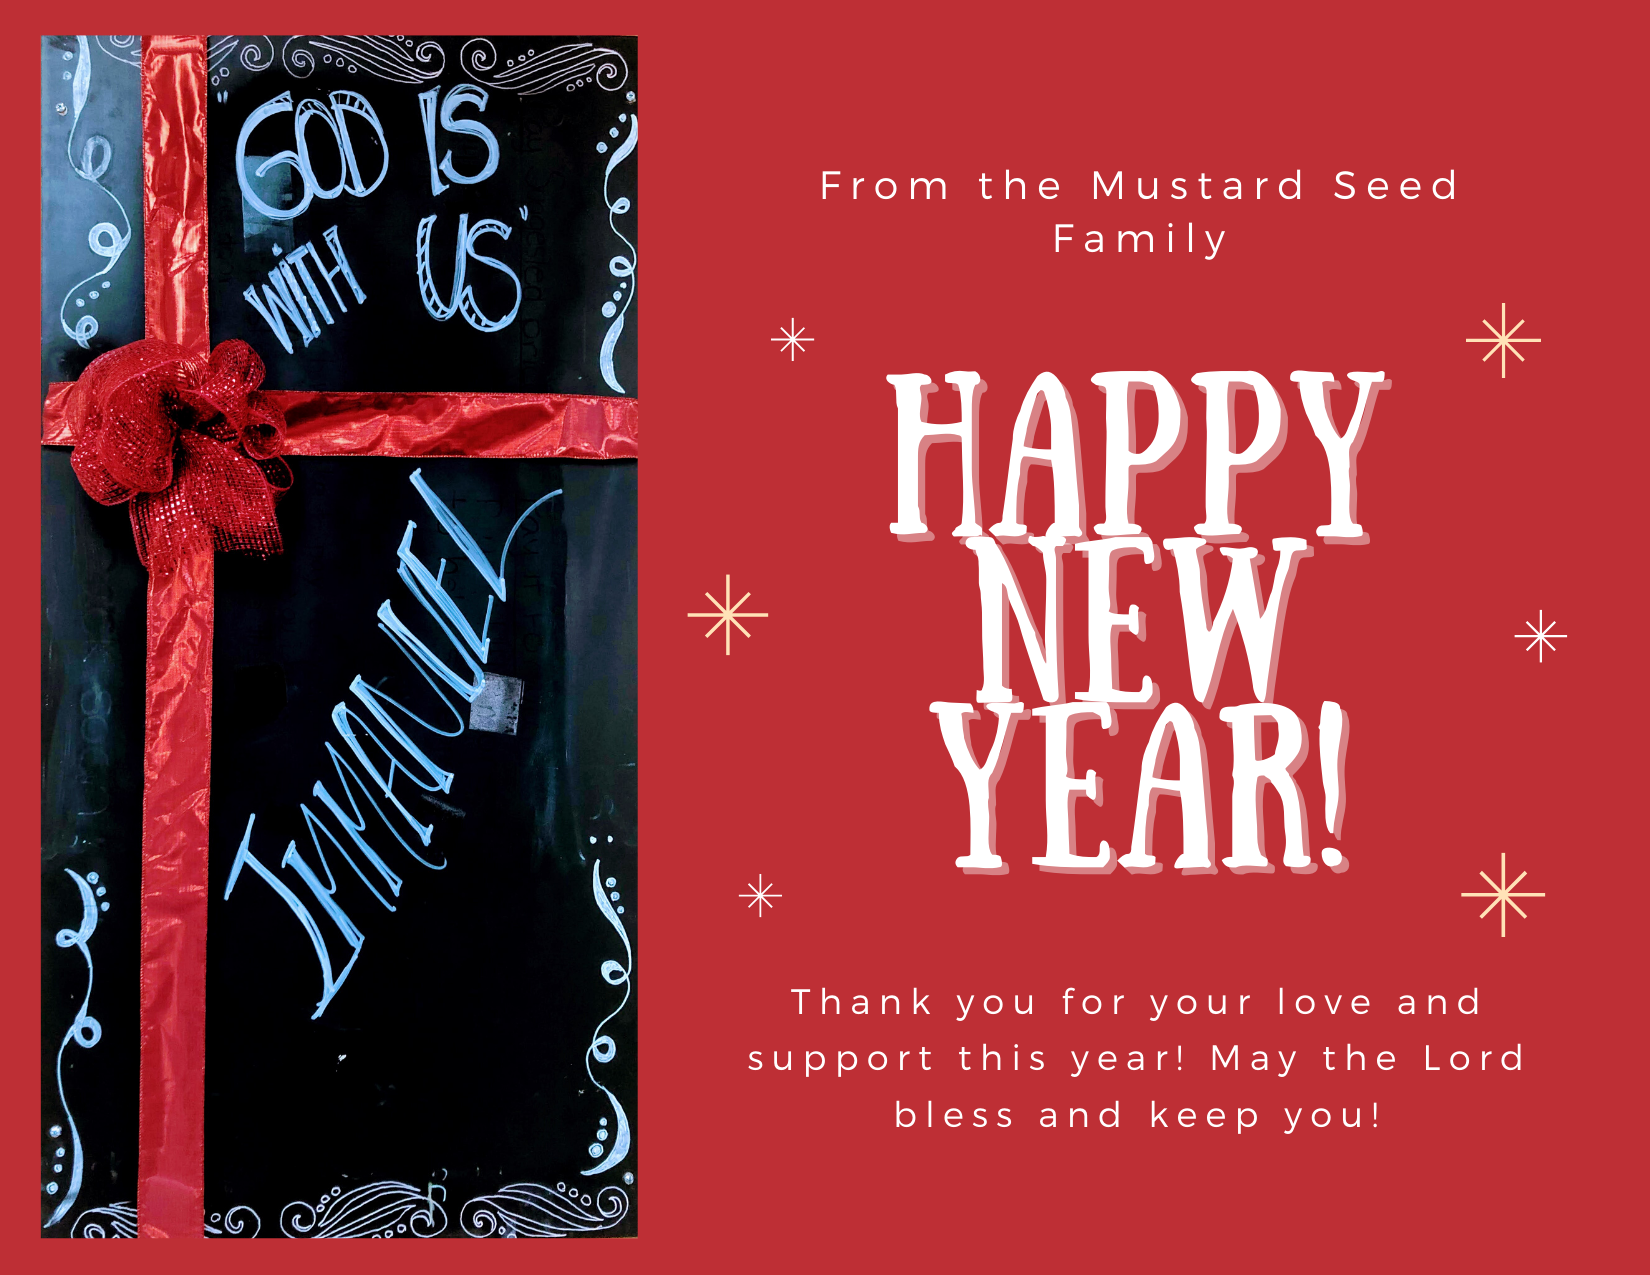 Happy New Year from the Mustard Seed Cafe!